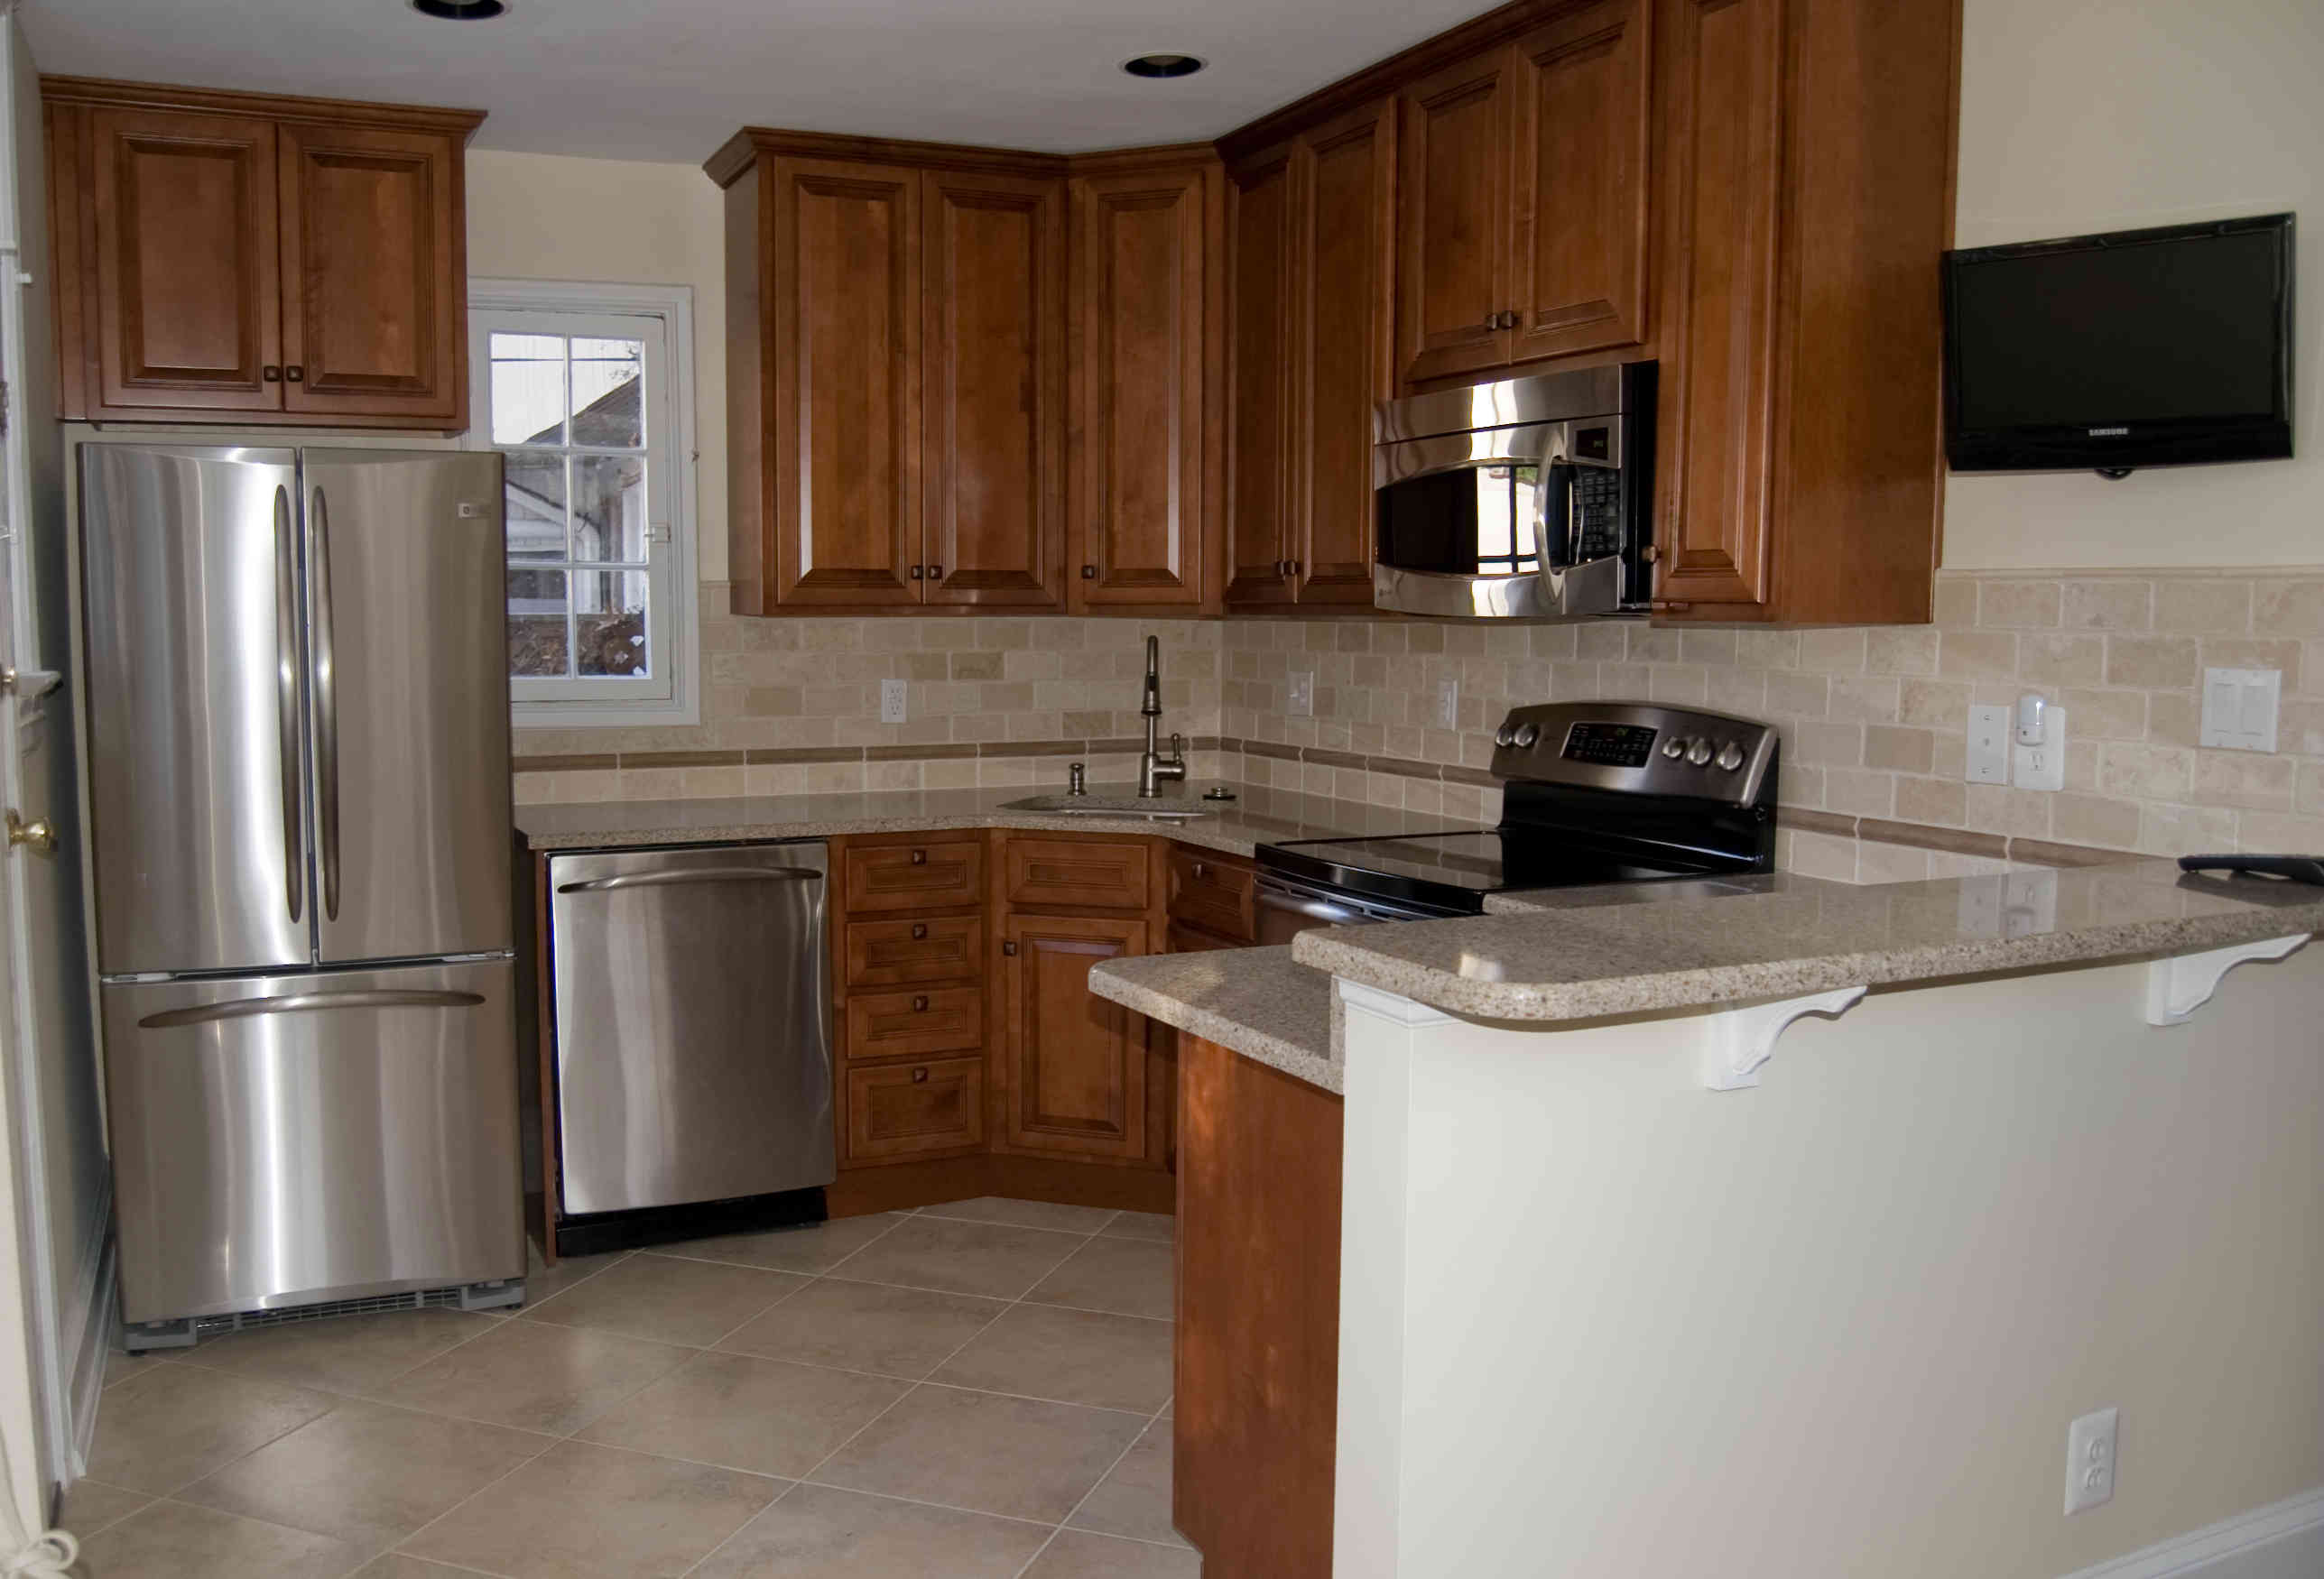 Kitchen Remodeling Washington Dc Interesting Kitchen Remodeling In Washington Dc & Bethesda Md  Melness . Review